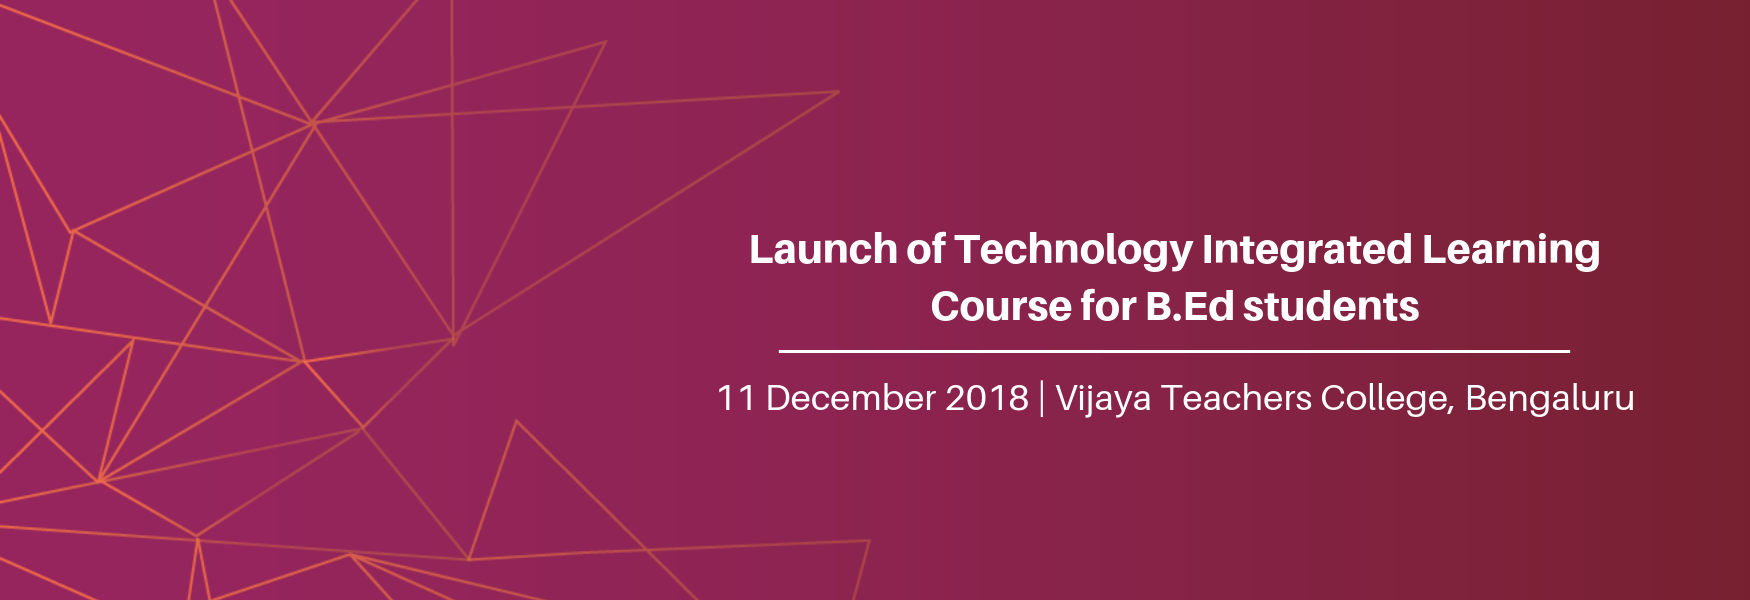 Launch of Technology Integrated Learning Course for B.Ed students